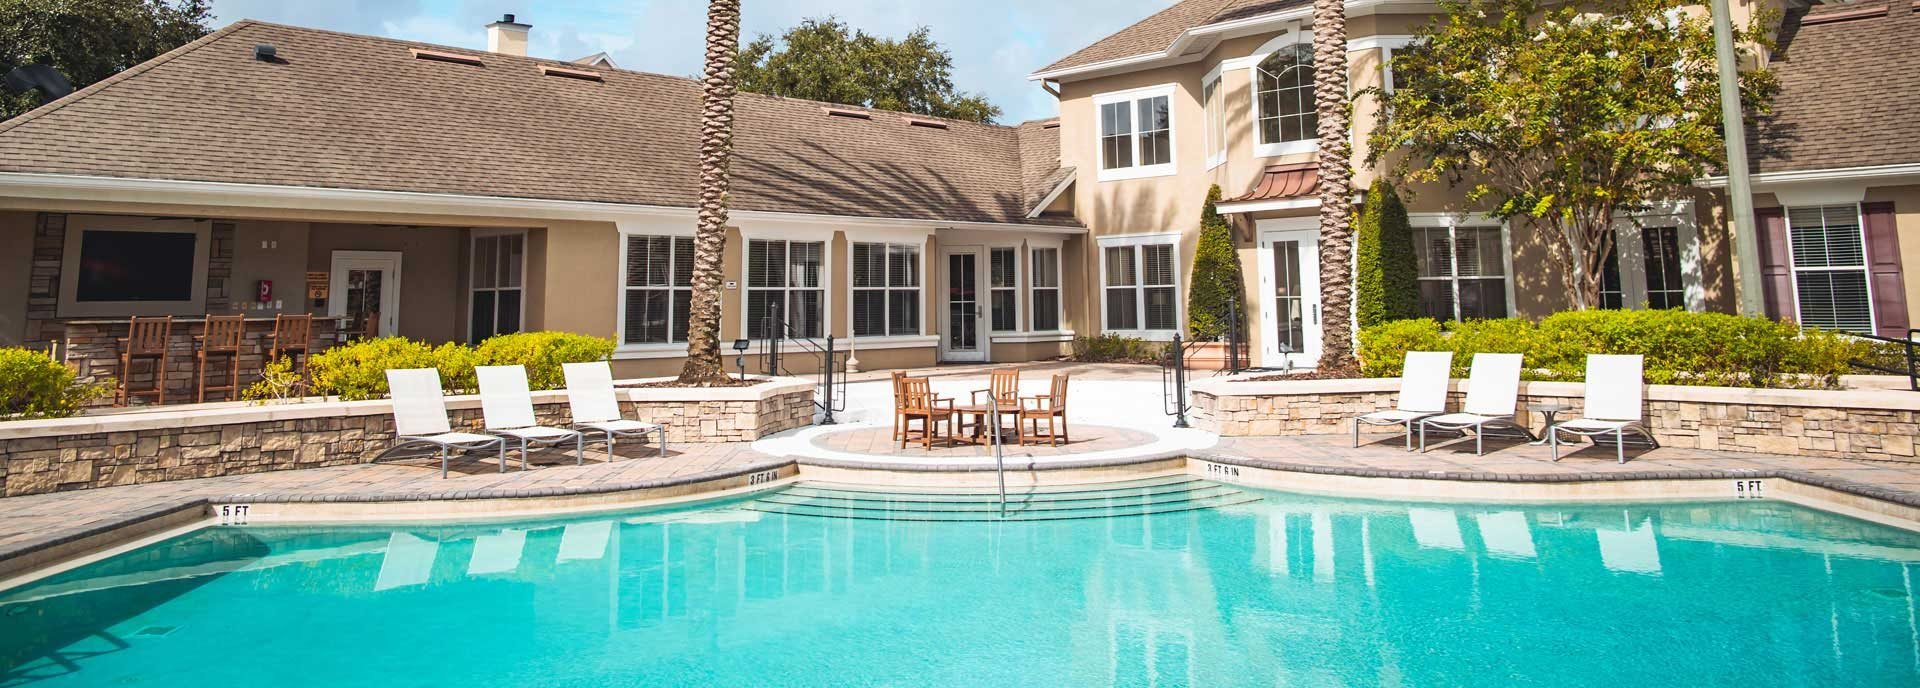 Poolside views at Northlake Park in Orlando, FL